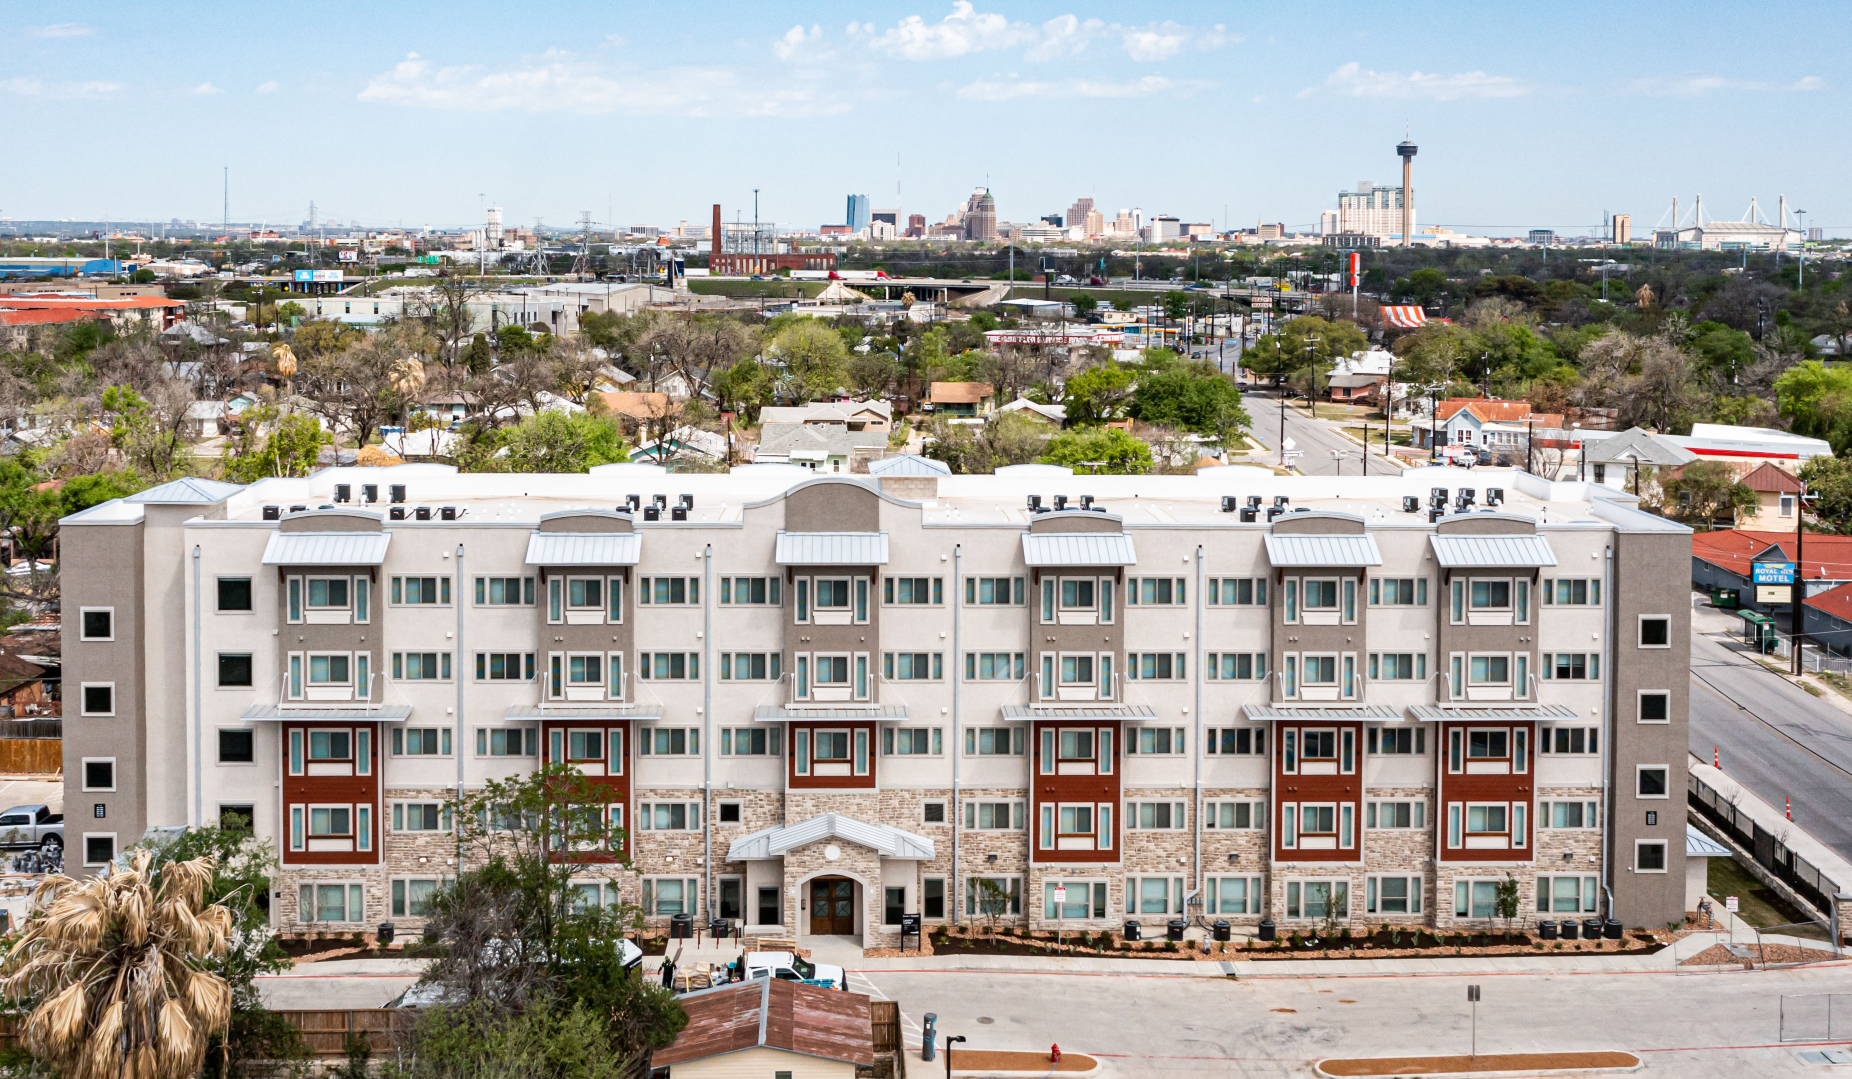 Village at Roosevelt exterior drone image with San Antonio skyline in the back